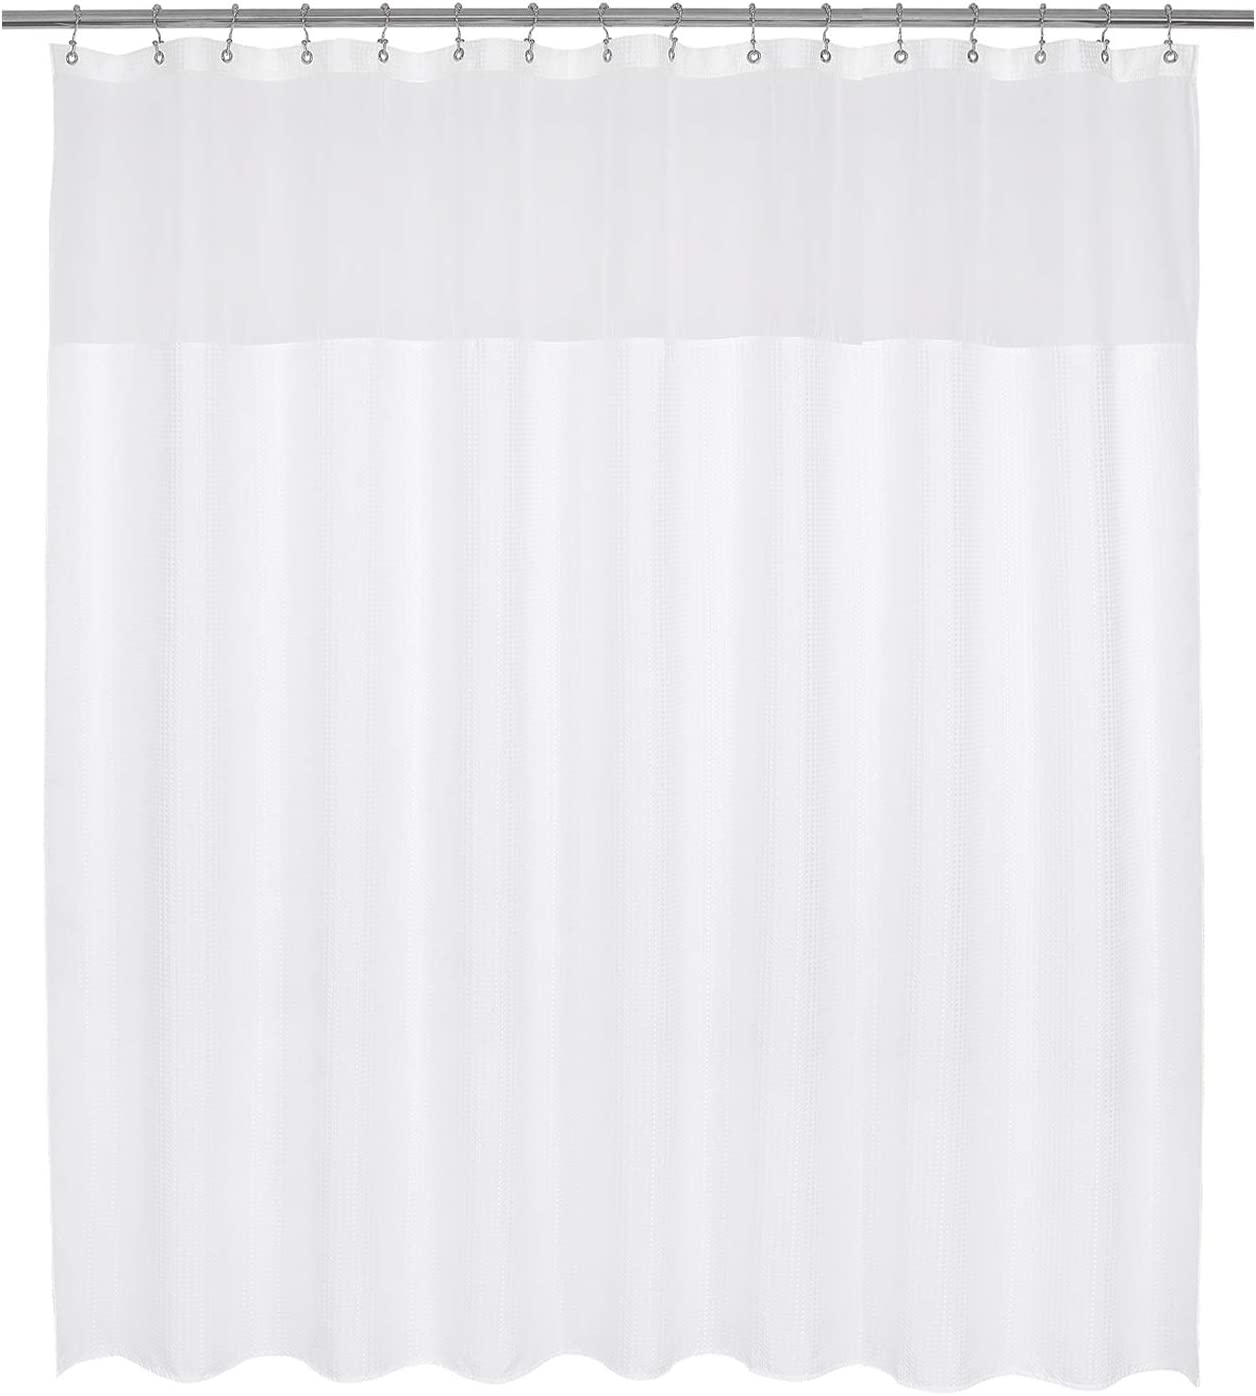 Barossa Design Large Fabric Shower Curtain with Sheer Window 96 x 78 inch, Waffle Weave, Hotel Collection, 230 GSM Heavyweight, Water Repellent, Machine Washable, White, 96x78